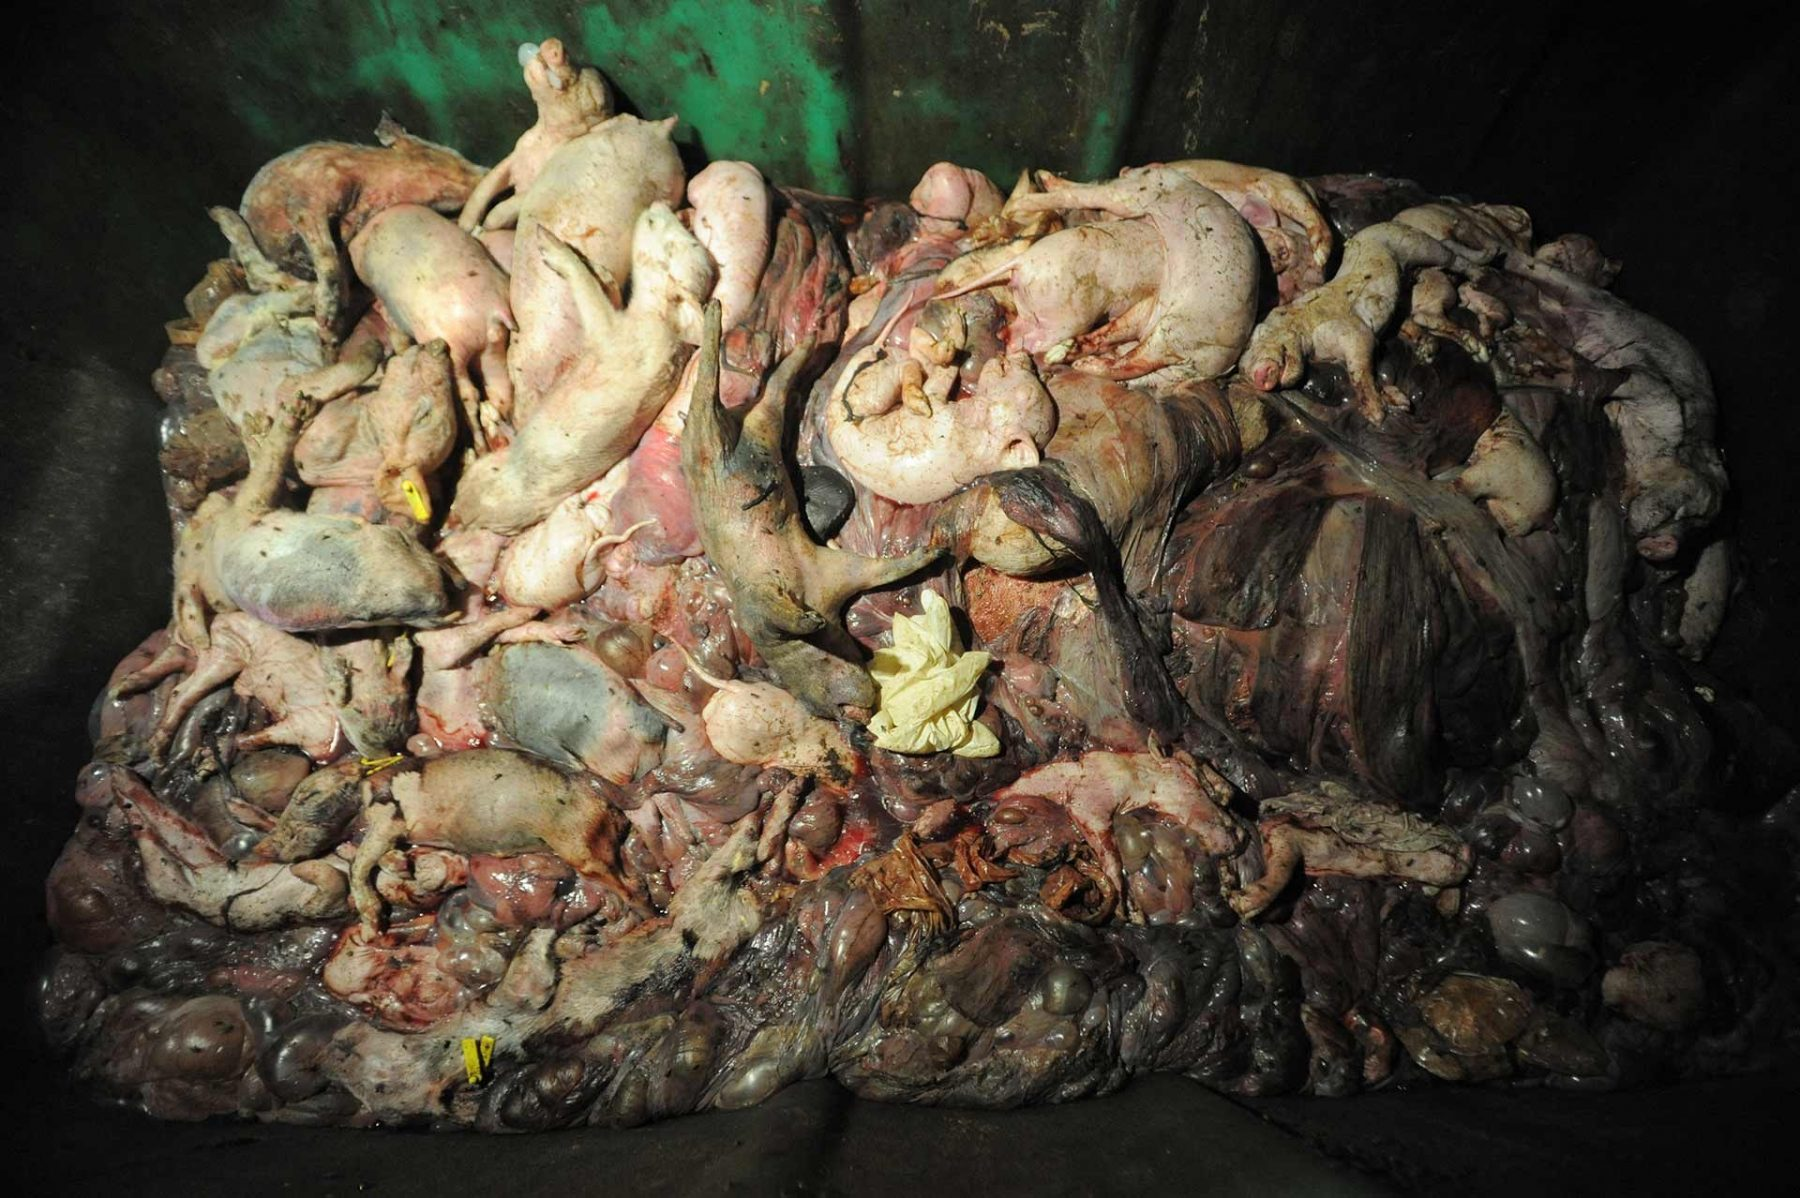 A dumpster full of dead piglets at a factory farm. Spain, 2009.